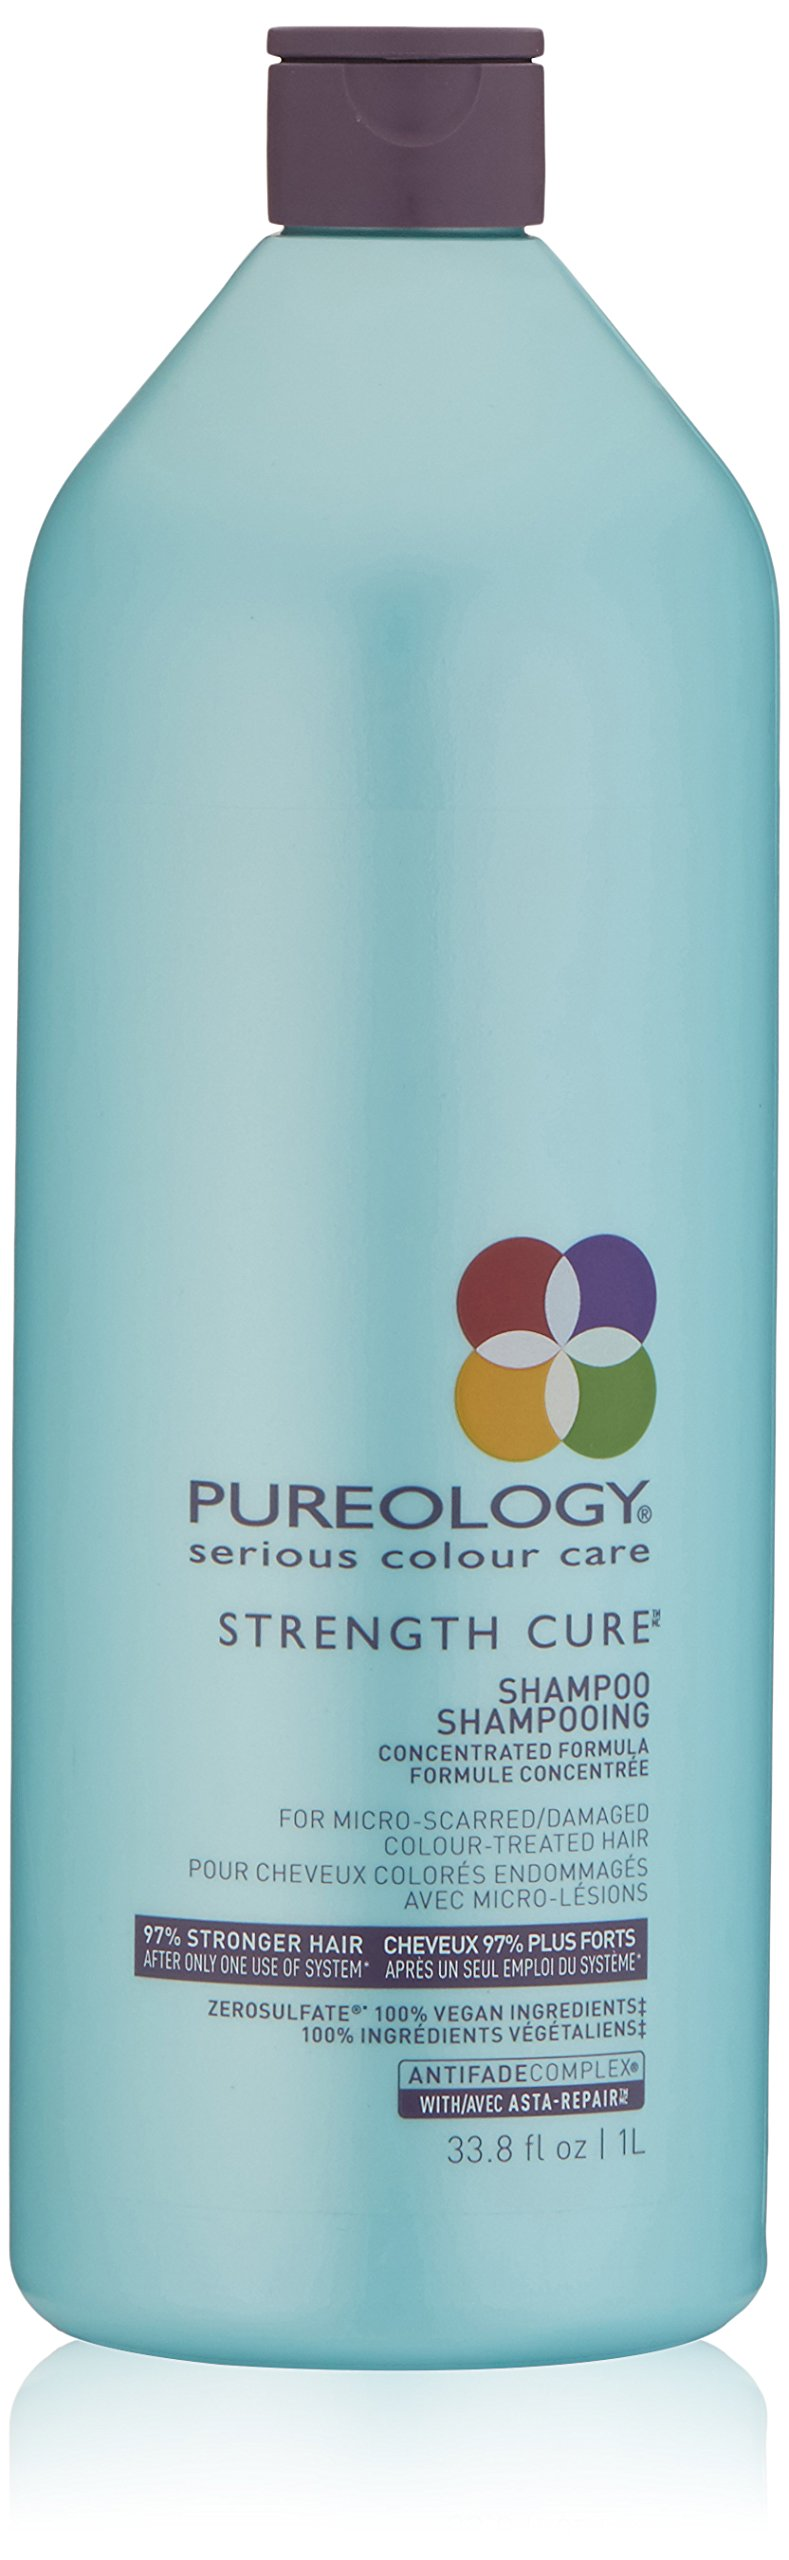 Pureology Strength Cure Sulfate Free Shampoo, 33.8 Fl. Oz by Pureology